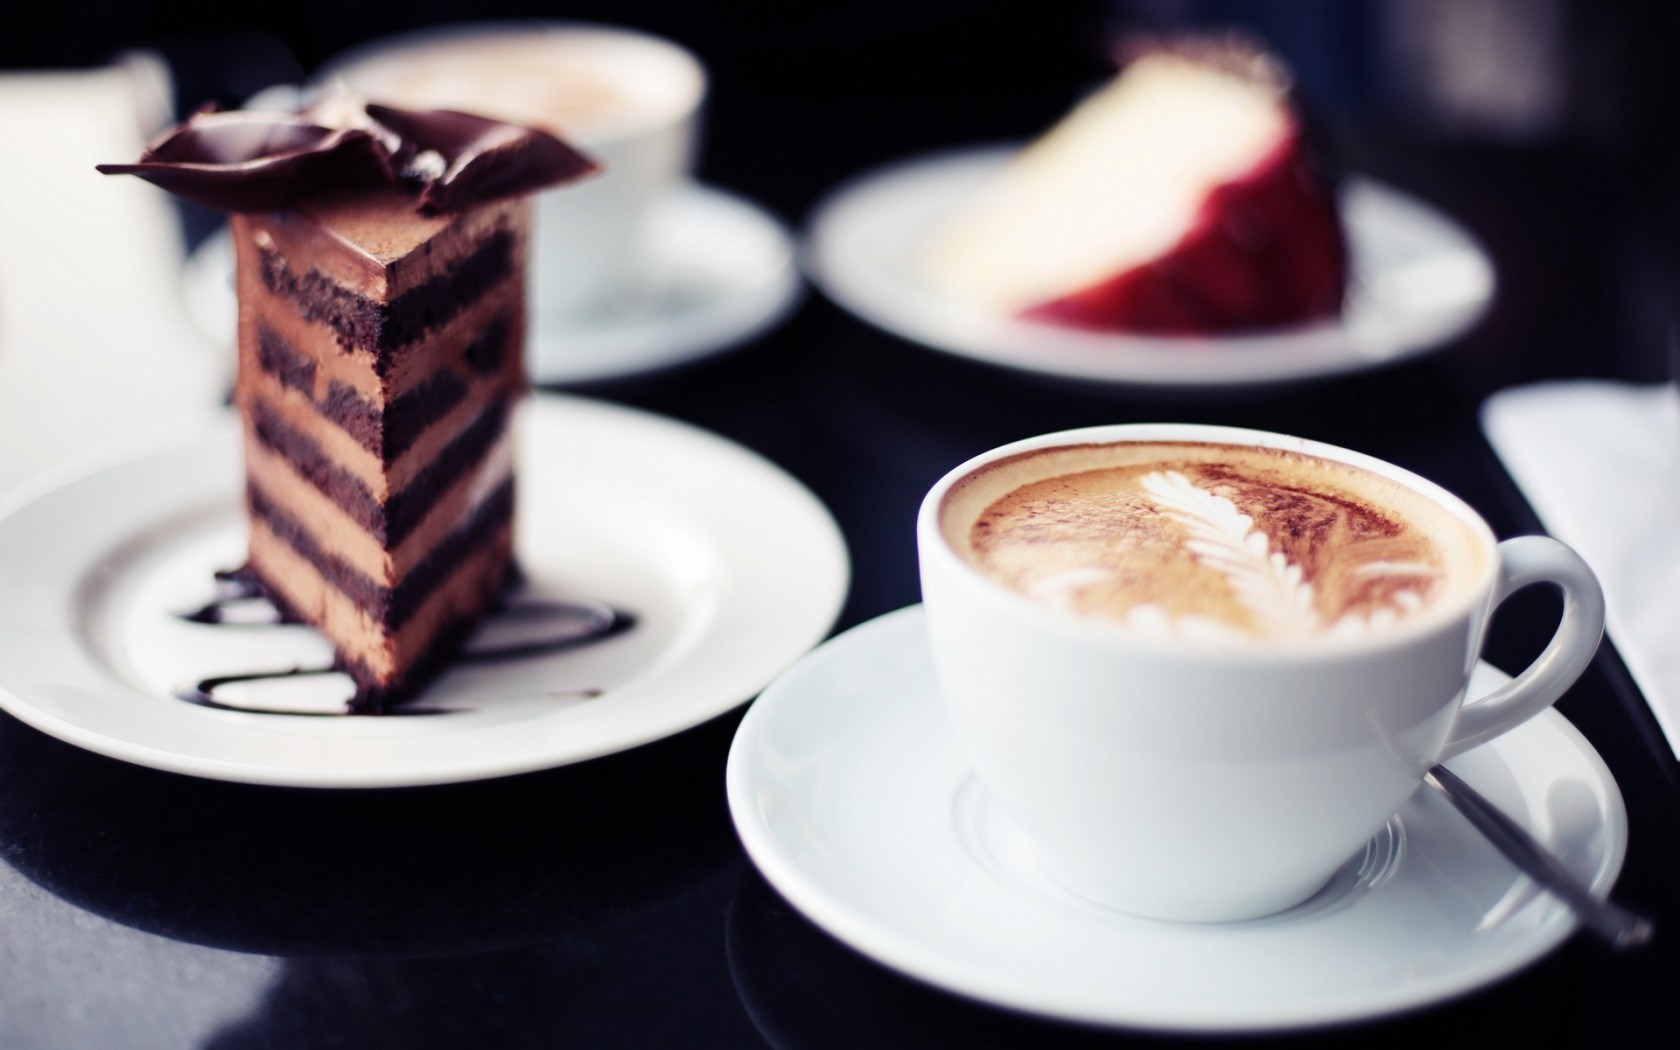 coffee-cup-piece-of-cake-hd-wallpaper